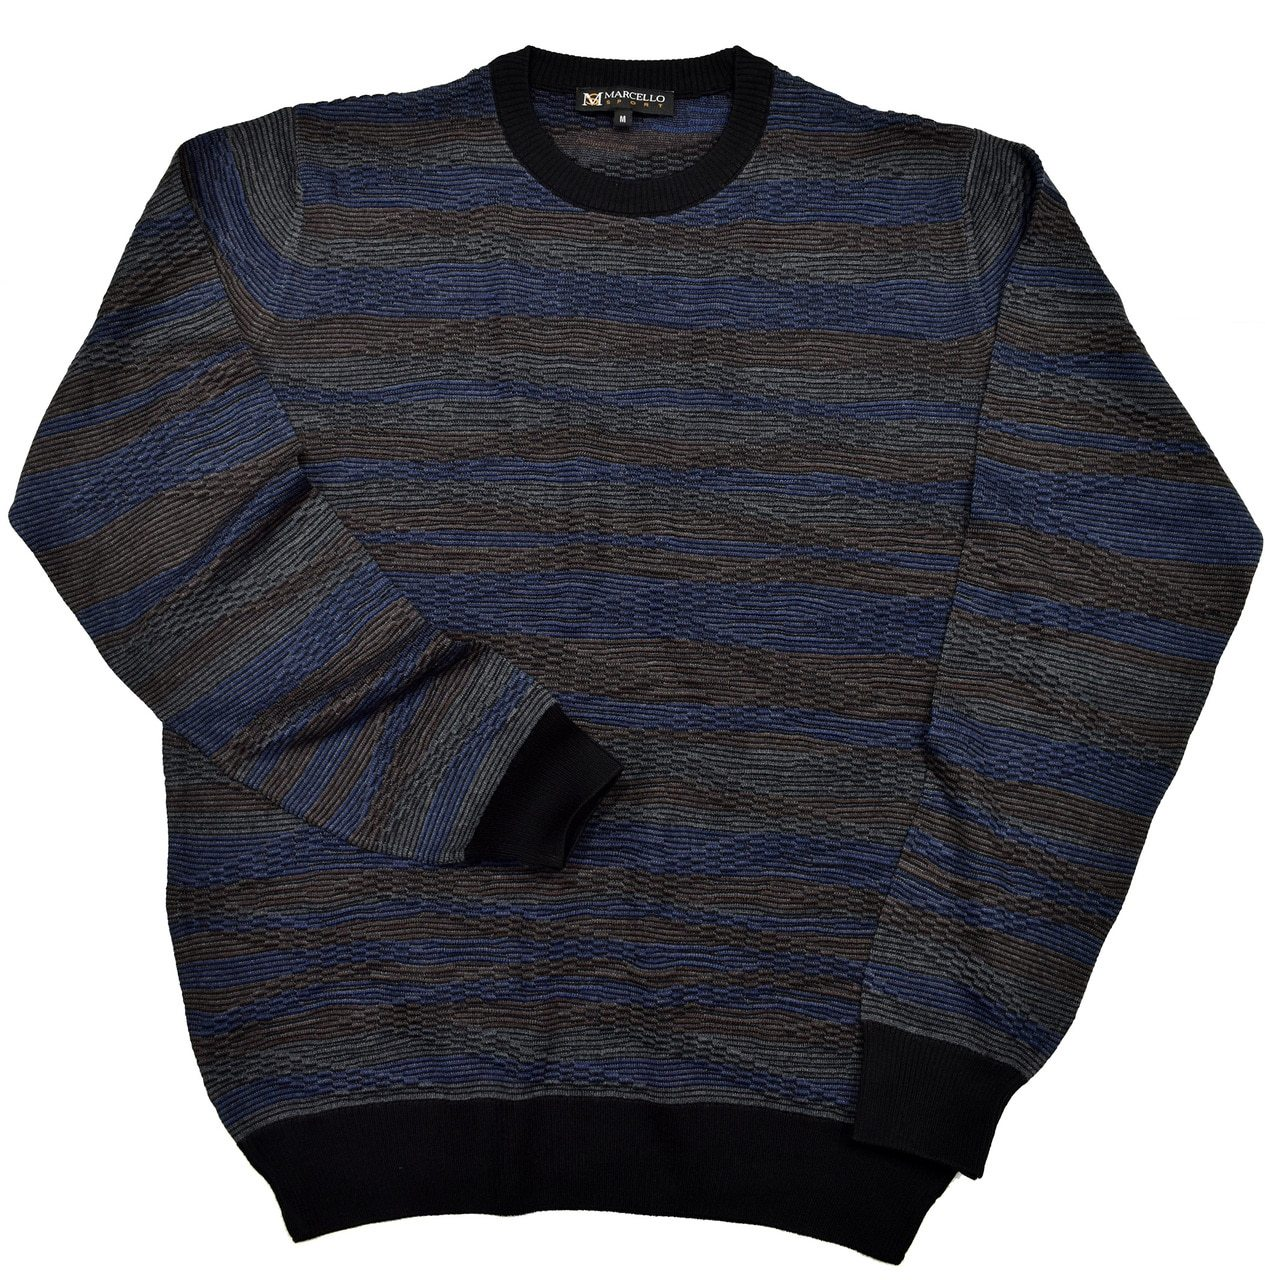 600 Bodrum Wave Sweater - Marcello Sport